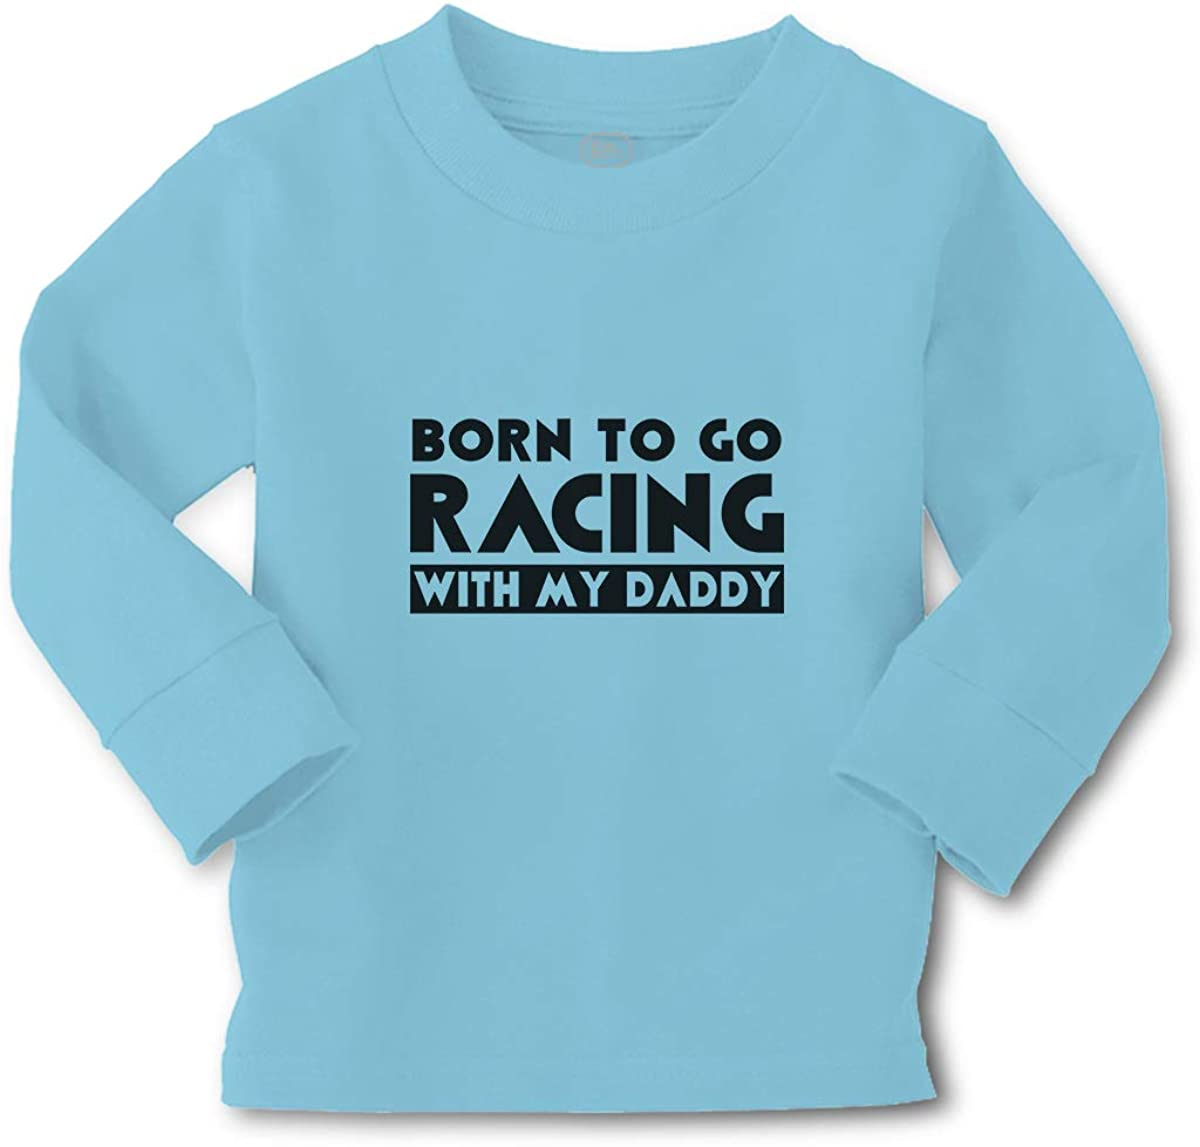 Kids Long Sleeve T Shirt Born to Go Racing with My Daddy Love Sport Cotton Boy & Girl Clothes Funny Graphic Tee Light Blue Design Only 2T